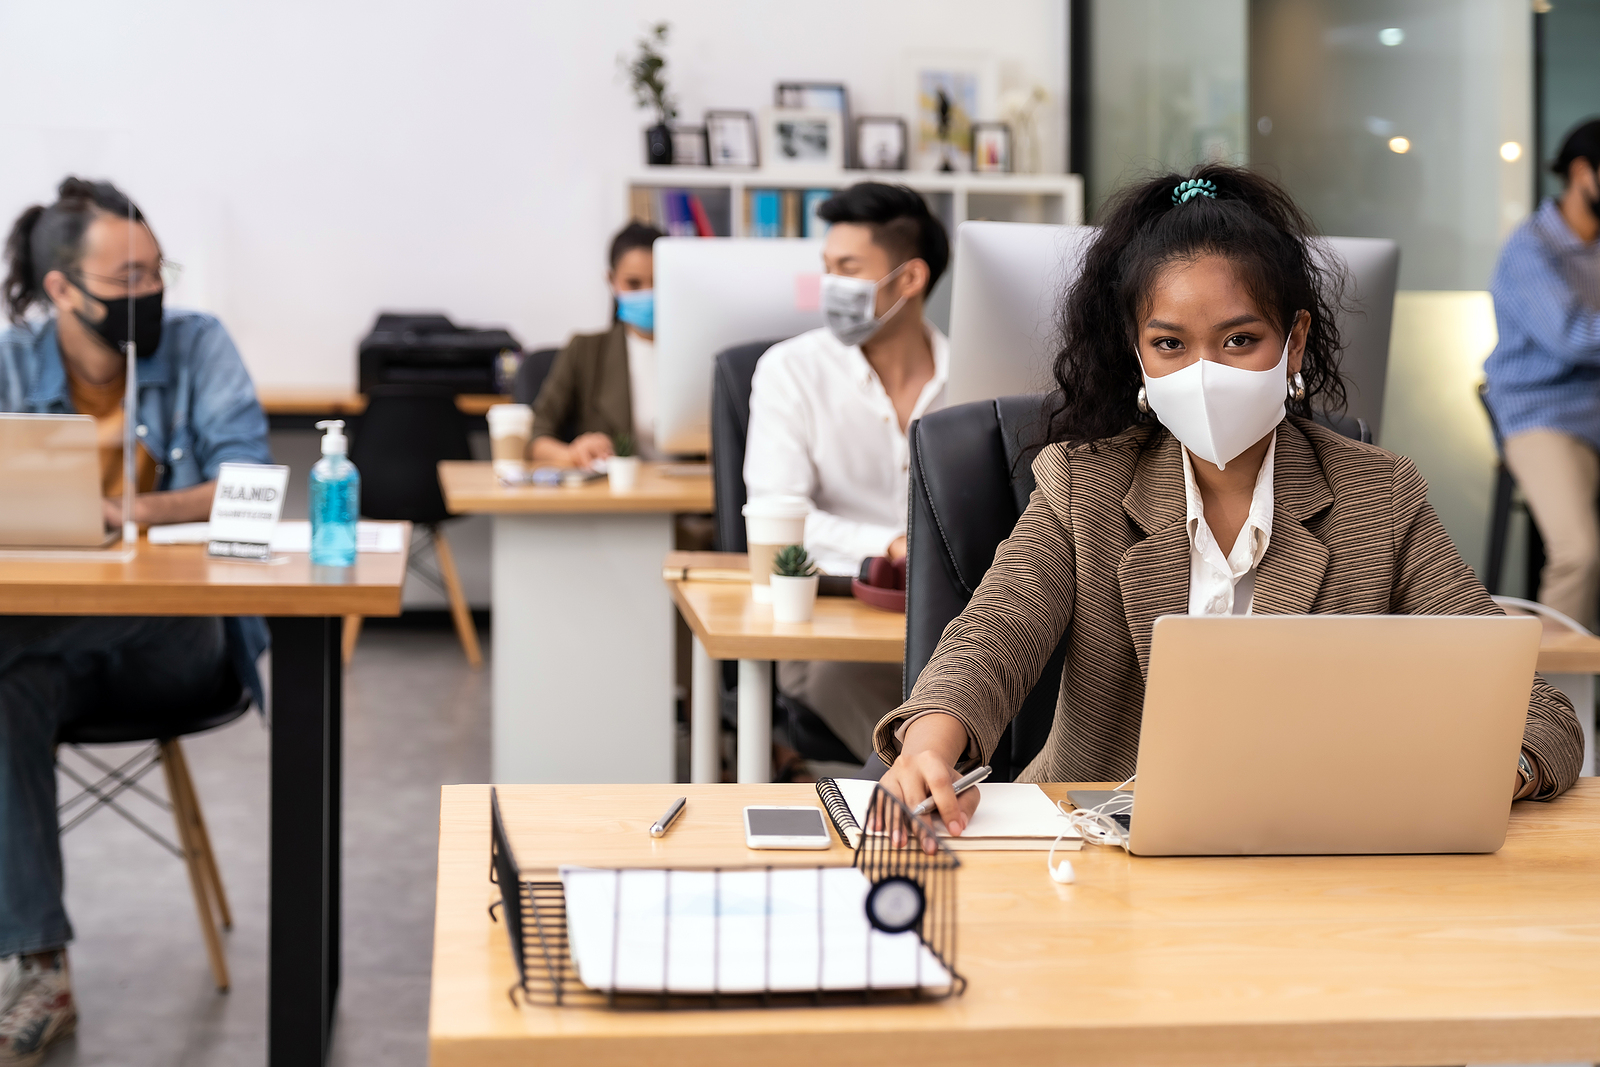 Best Practices for In-Person Business During a Pandemic